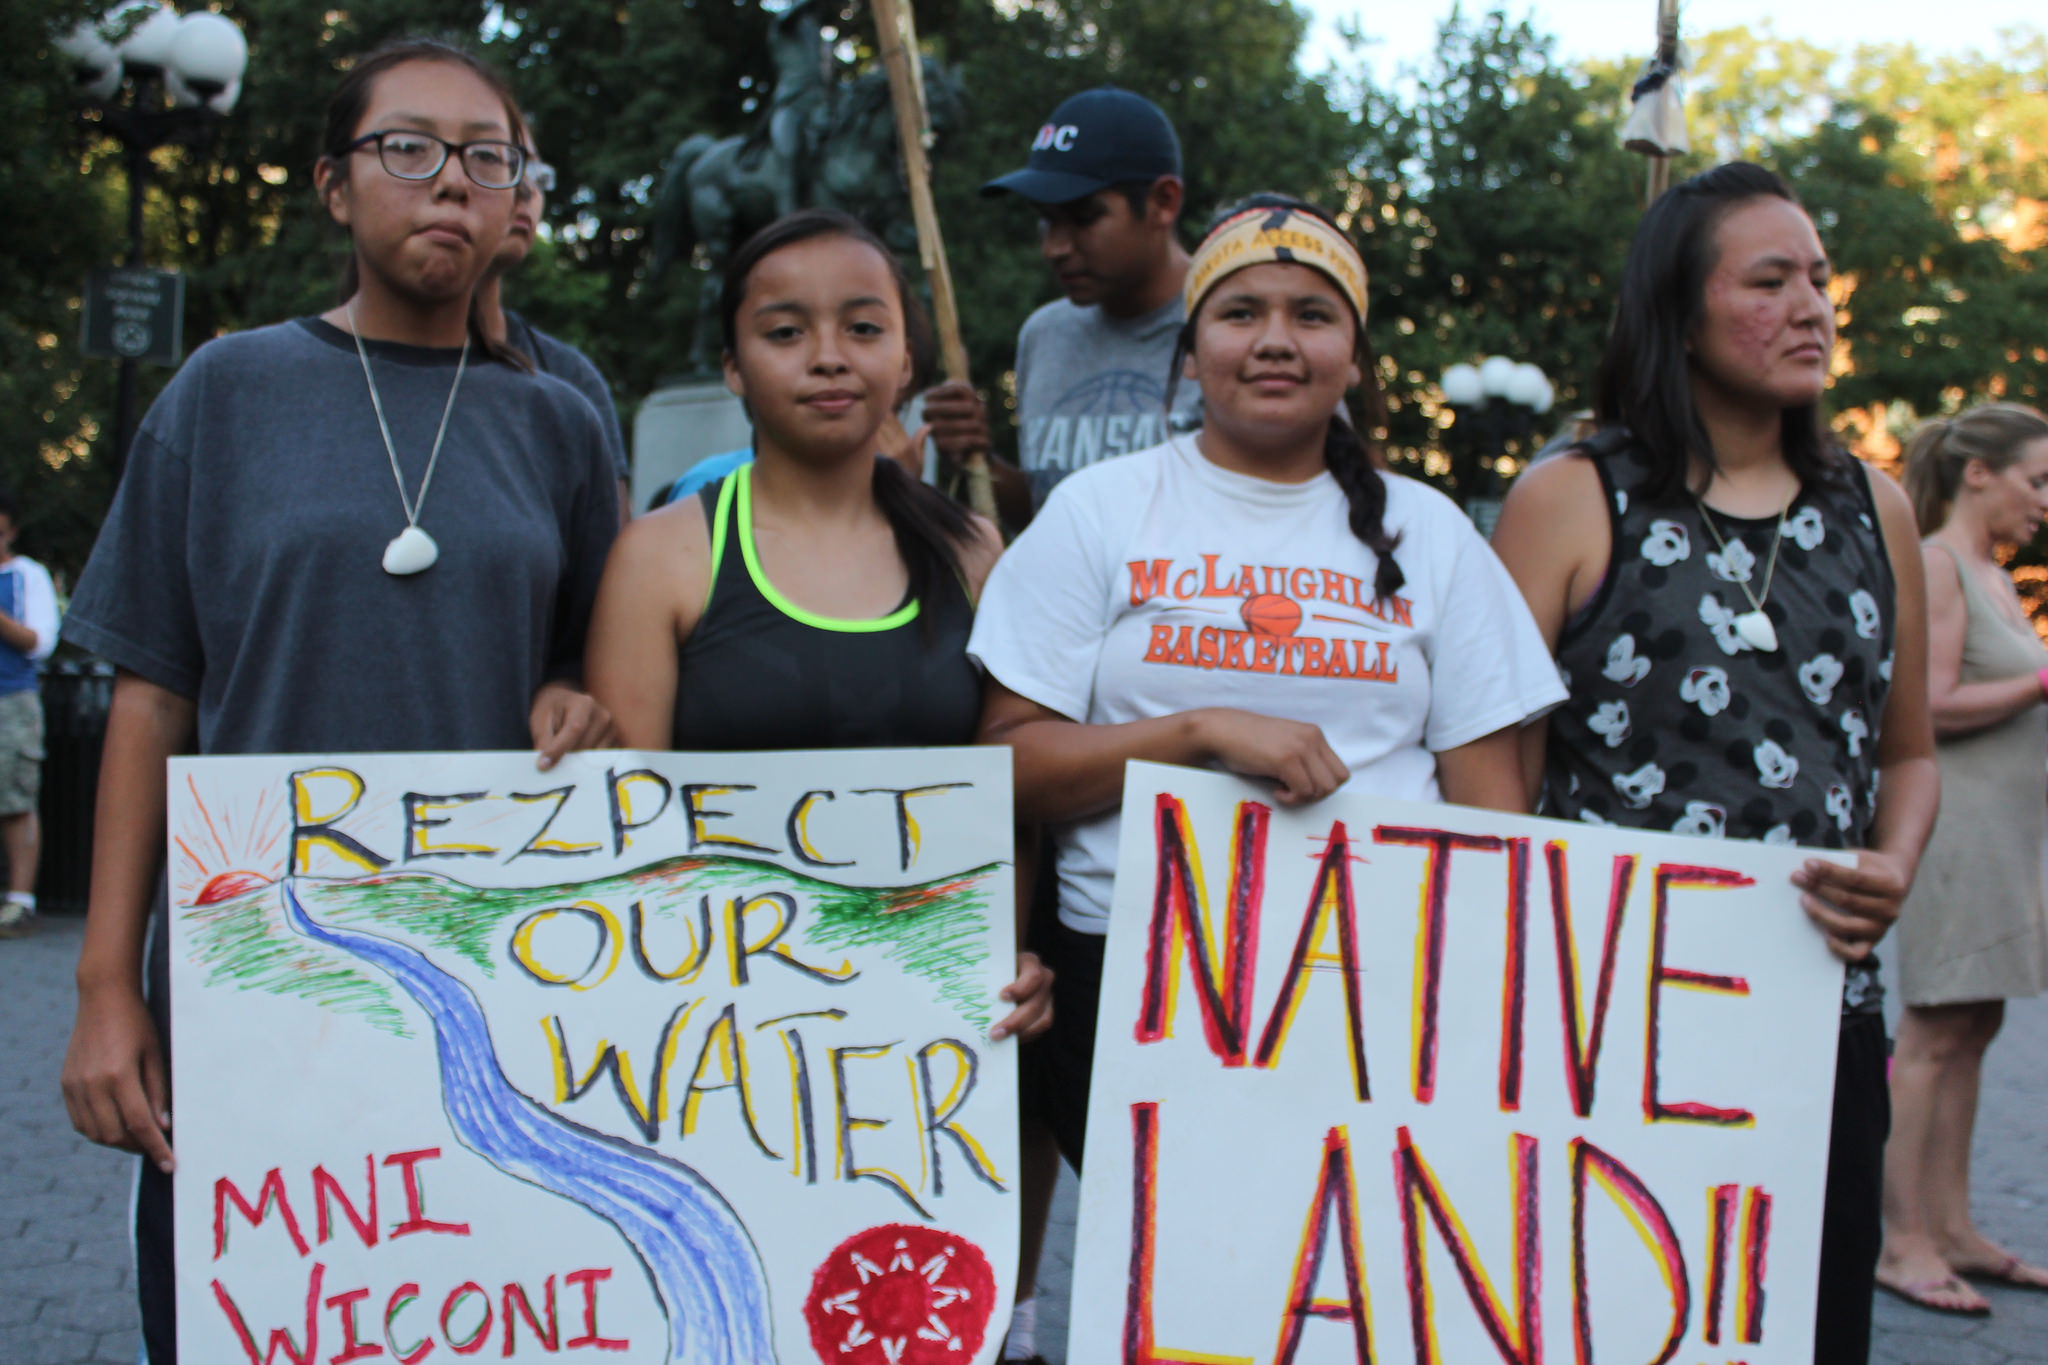 Members of the Sioux tribe protesting the Dakota Access Pipeline. (Photo Credit: Joe Catron)